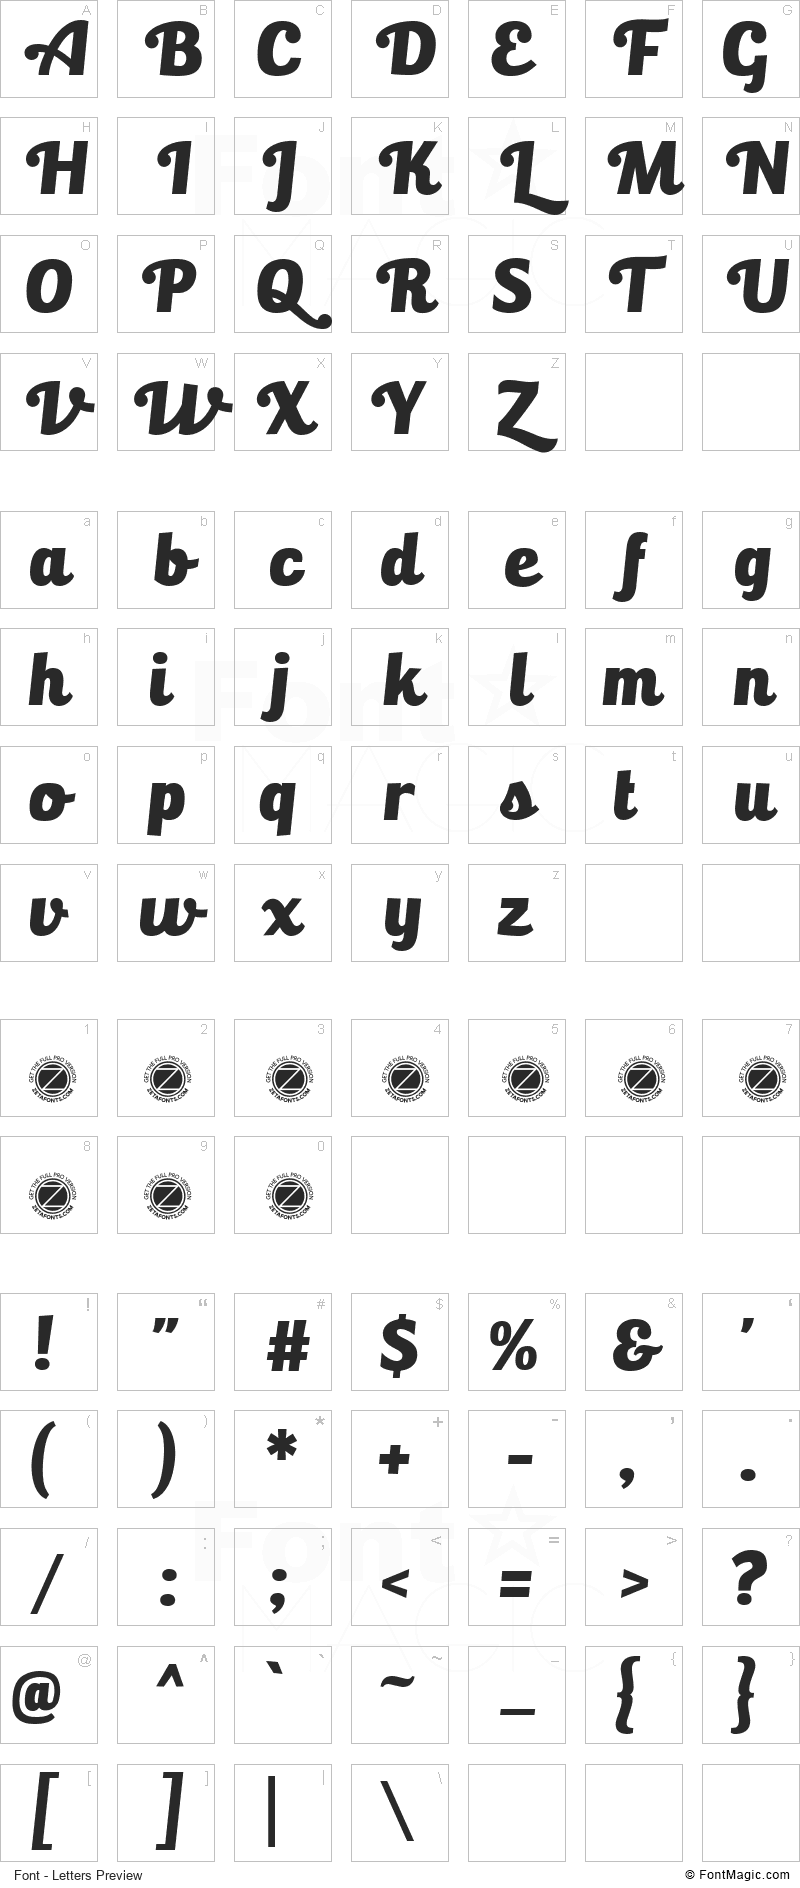 Bulletto Killa Font - All Latters Preview Chart